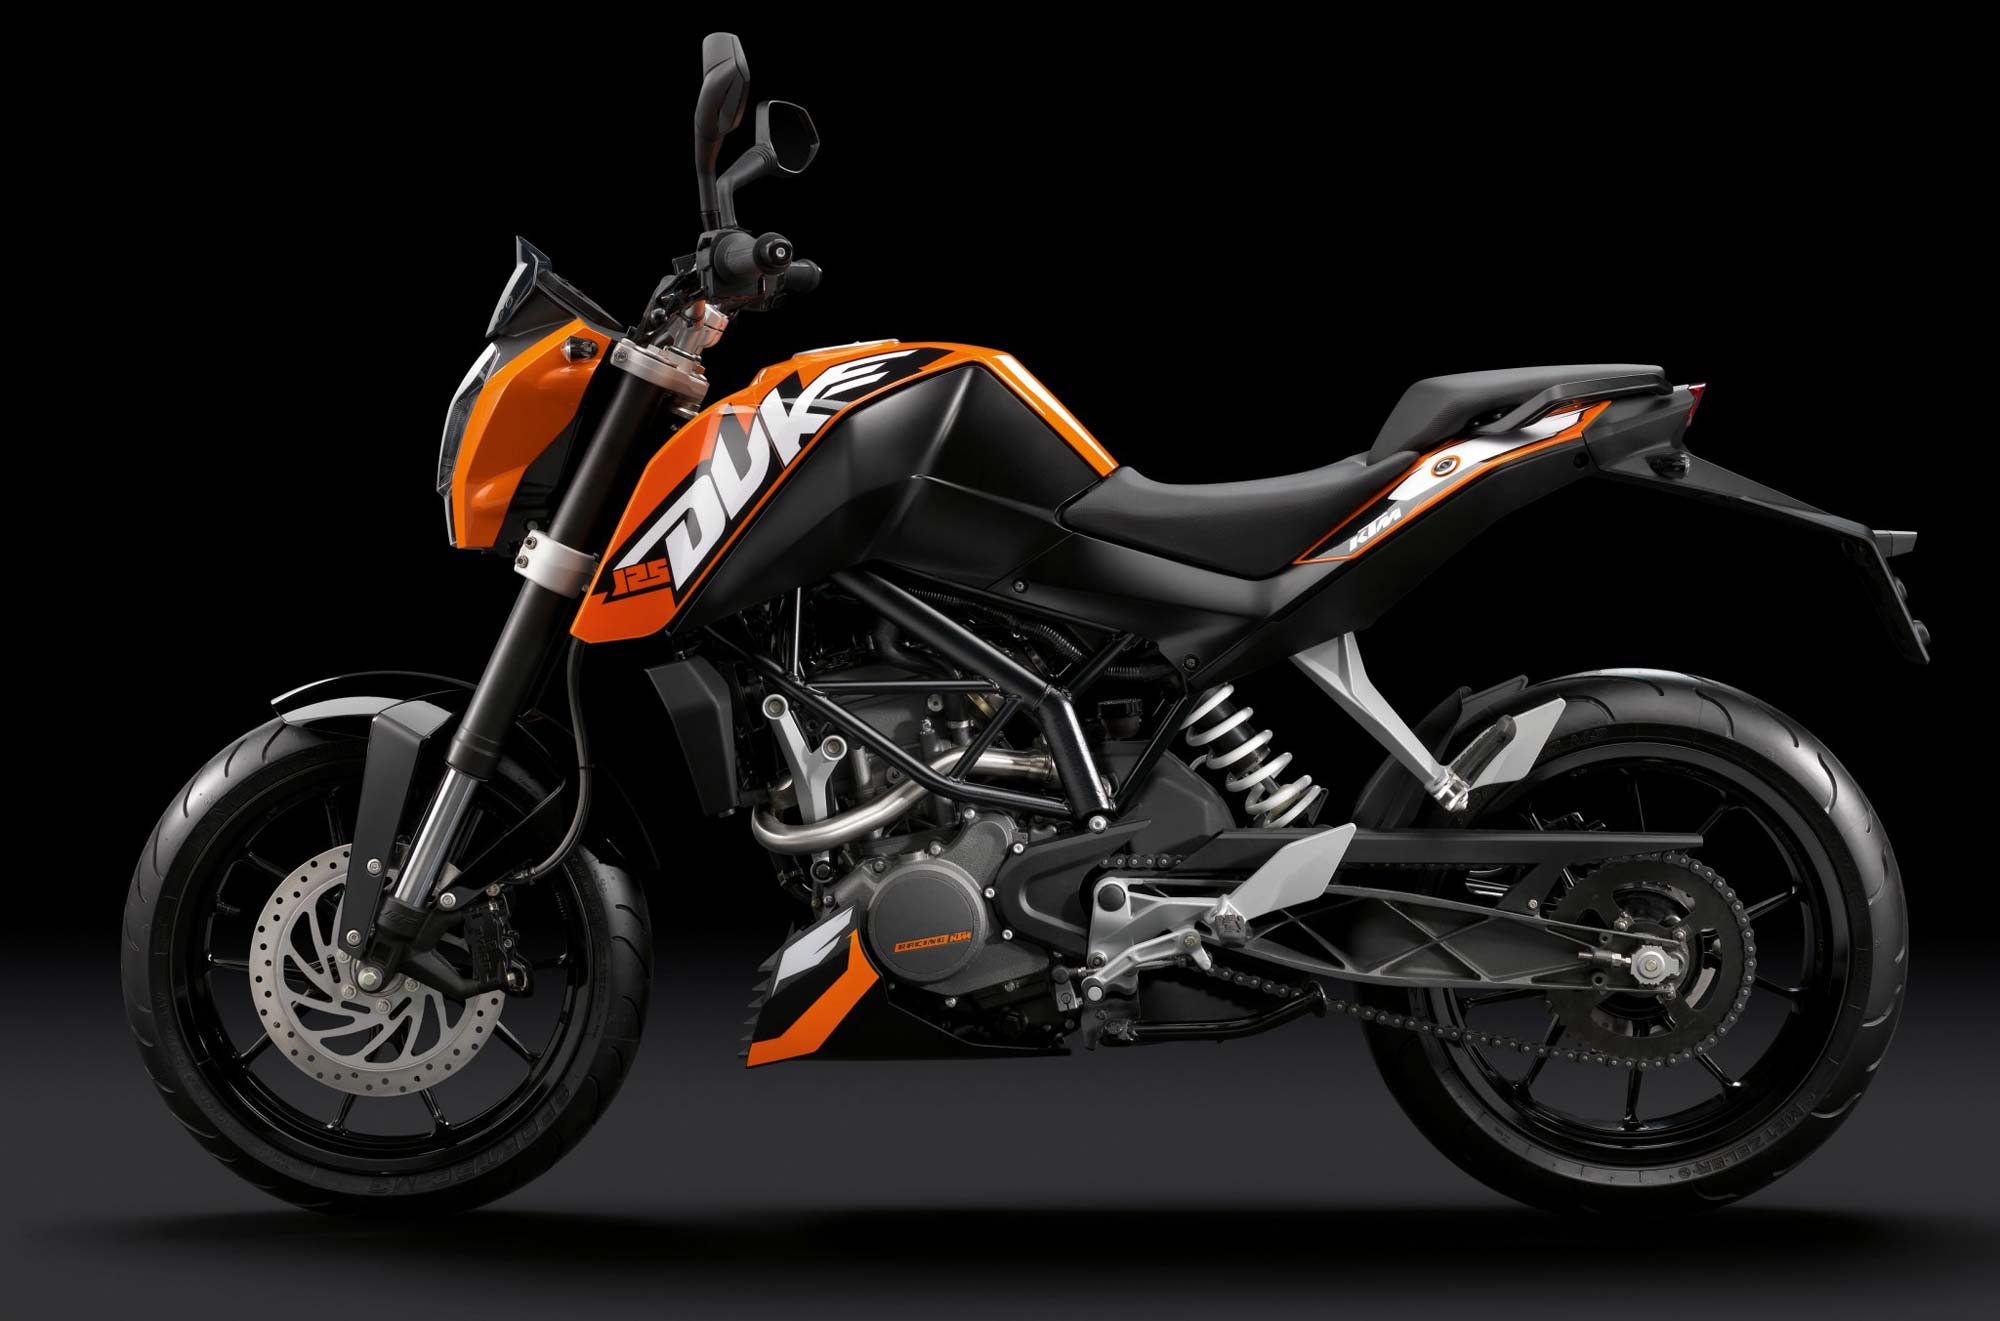 2011 ktm 125 duke the bike bajaj built asphalt rubber. Black Bedroom Furniture Sets. Home Design Ideas